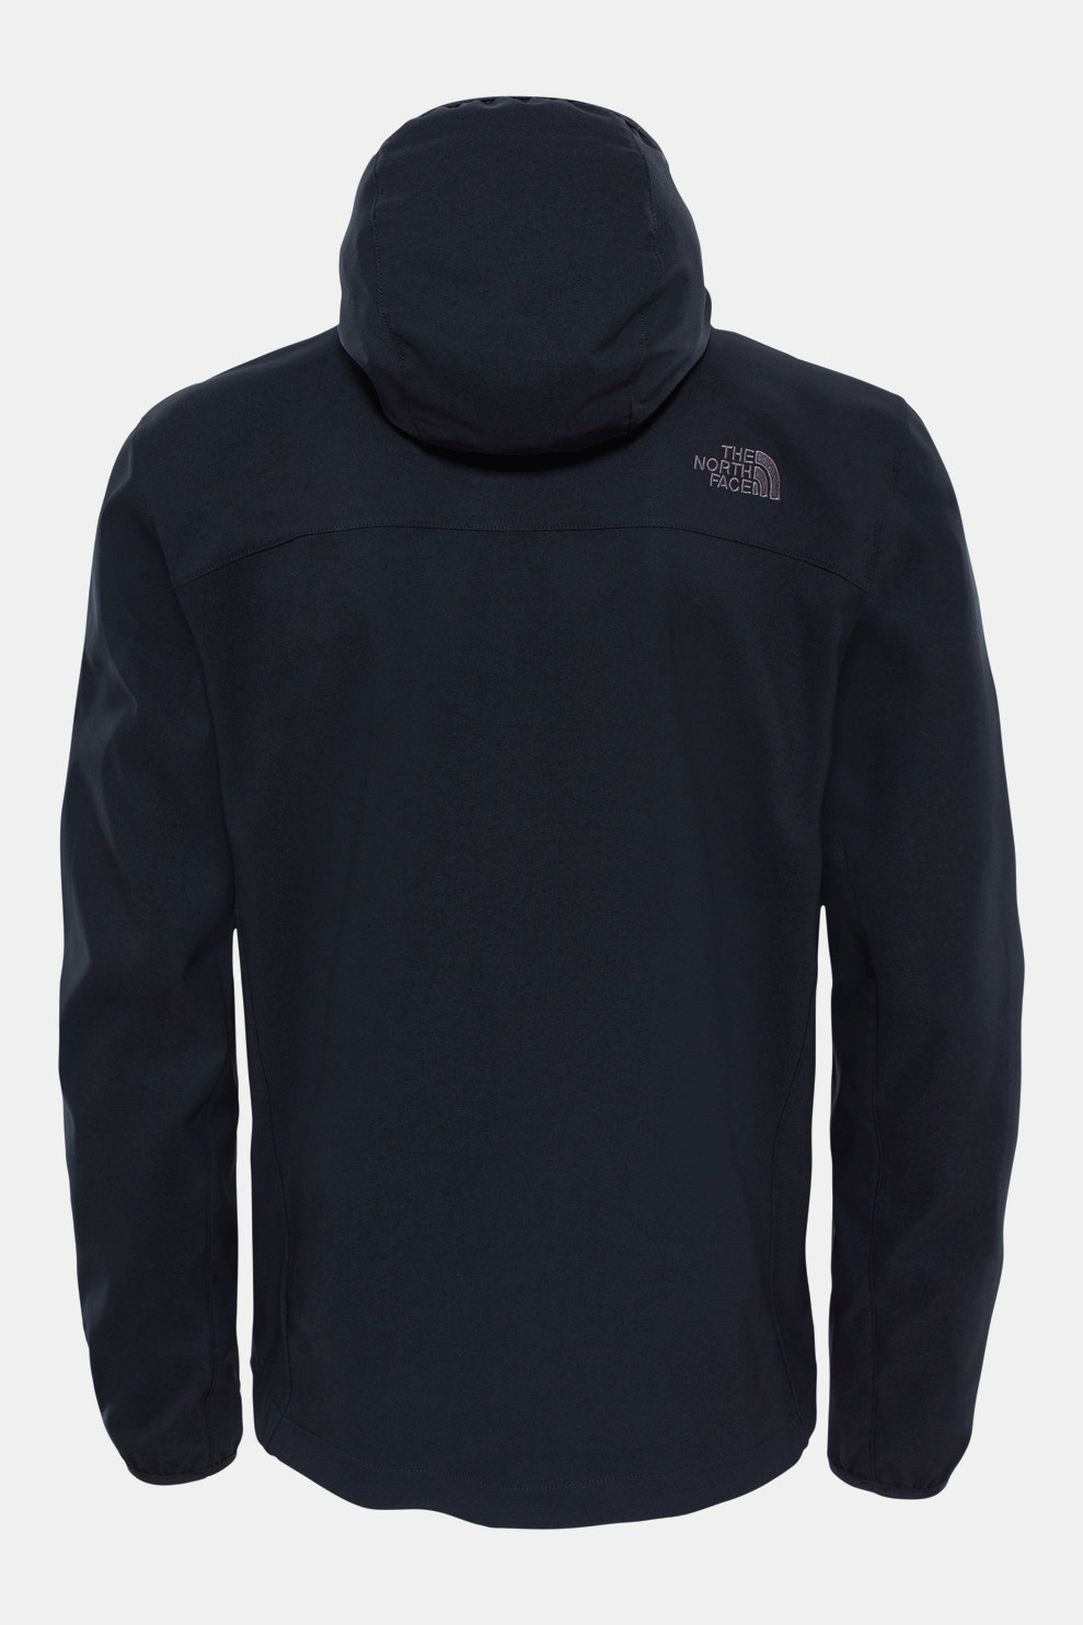 North face hoodies sale